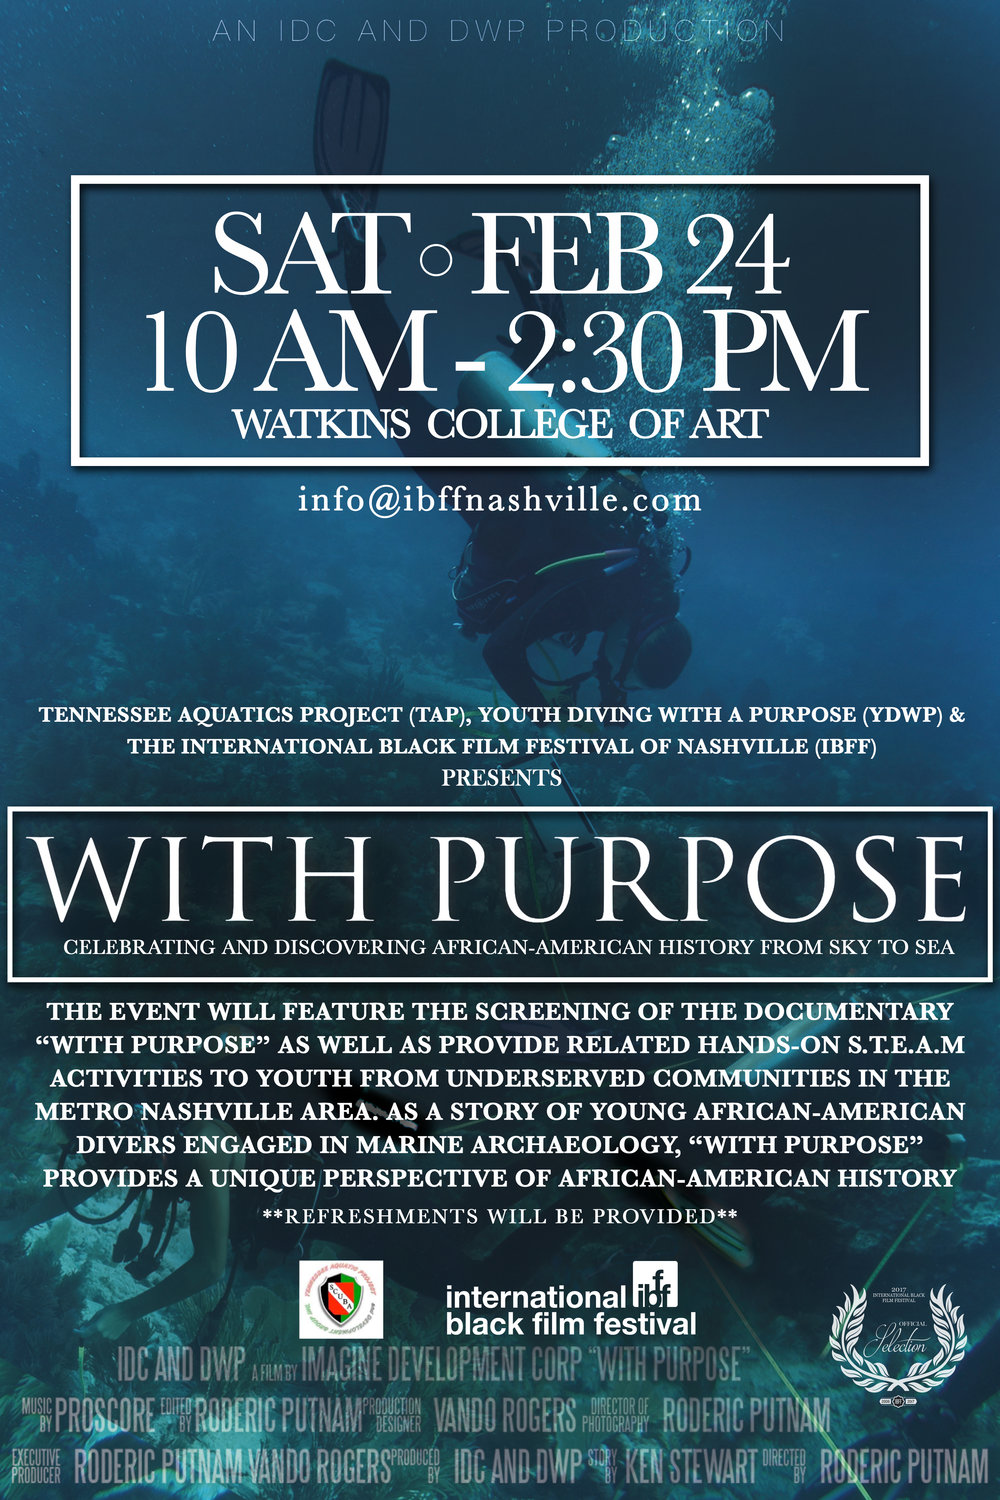 With Purpose: Celebrating and Discovering African-American History - Saturday, February 24, 2018The event will feature the screening of the documentary With Purpose as well as provide related hands-on STEAM activities to youth from underserved communities in the Metro Nashville Area. As a story of young African-American divers engaged in marine archaeology, searching for the slave ship Guerrero, sunk off the coast of Florida in 1827 with 561 captured Africans on board.